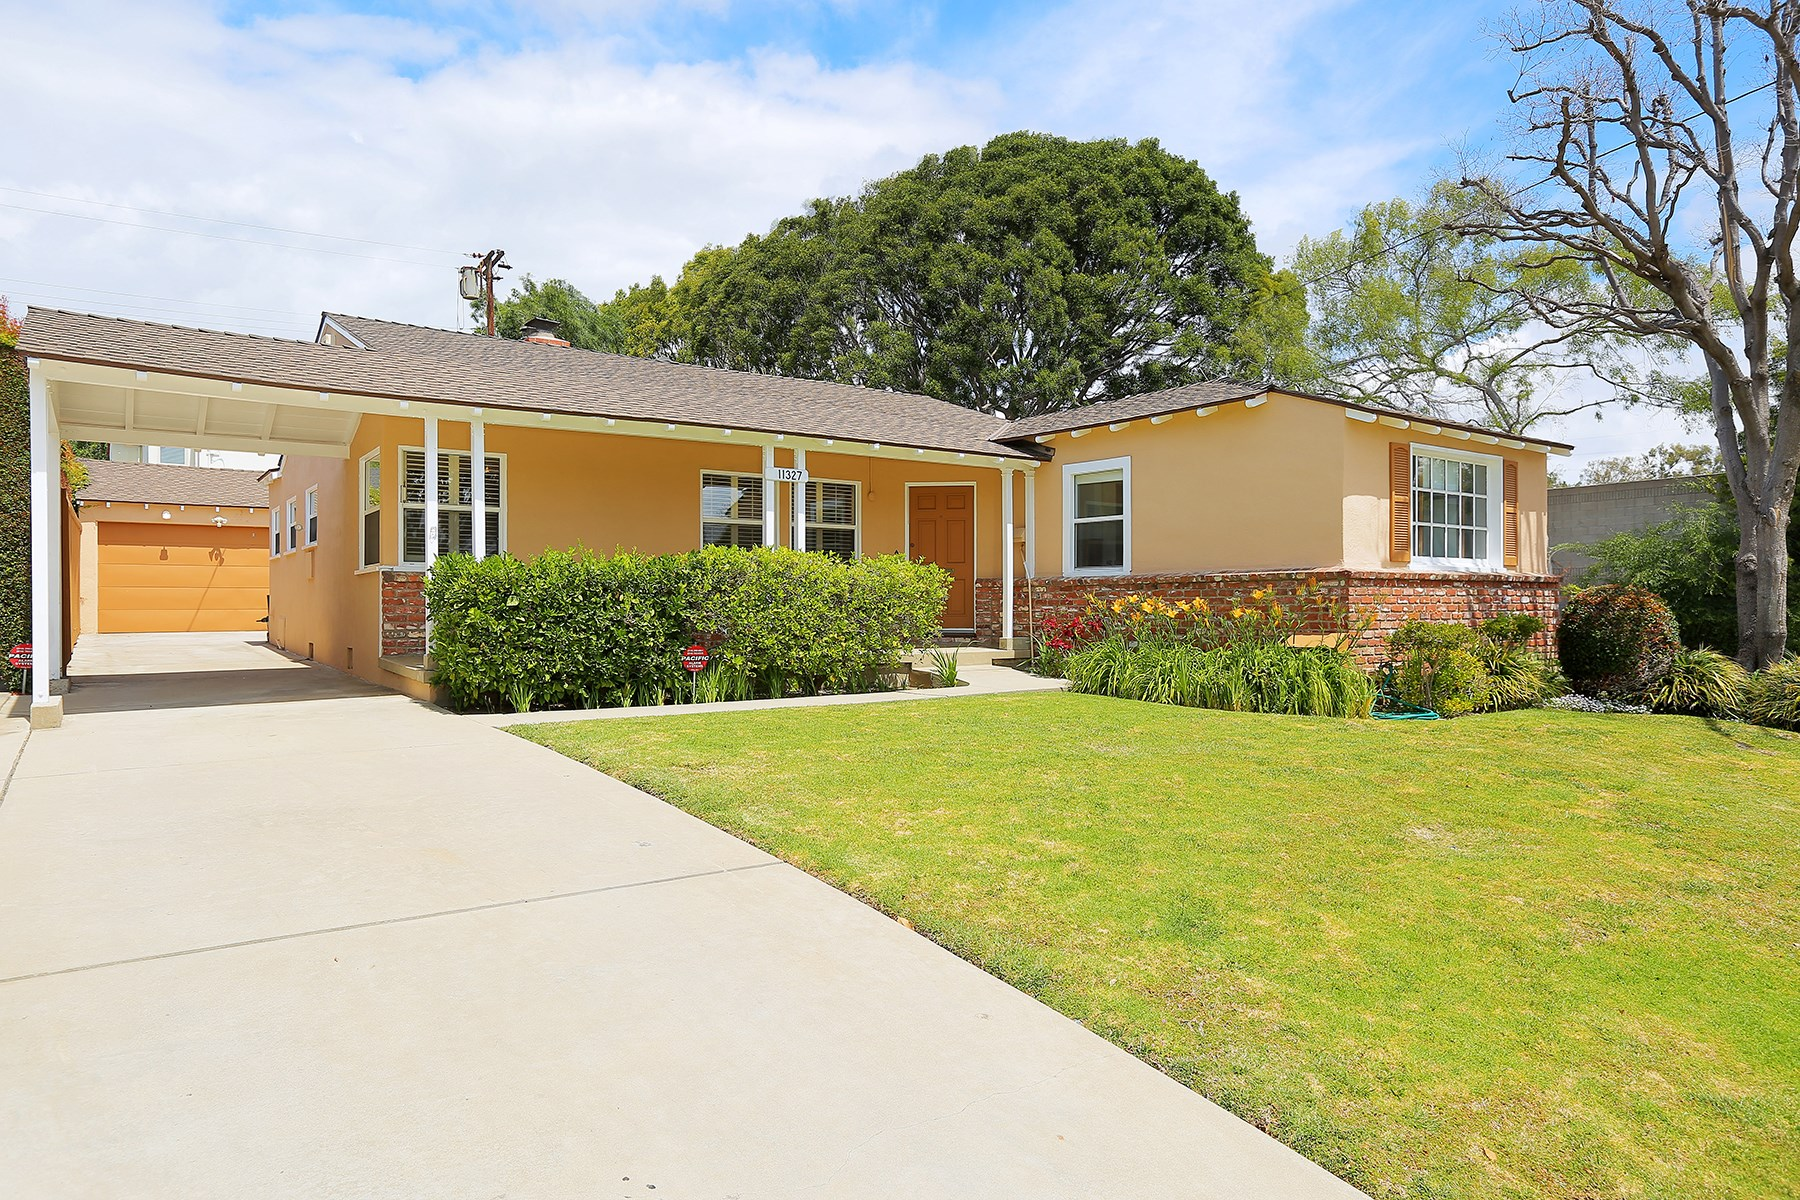 단독 가정 주택 용 매매 에 Adorable Bright Traditional Home 11327 Chenault Street Brentwood, Los Angeles, 캘리포니아, 90049 미국